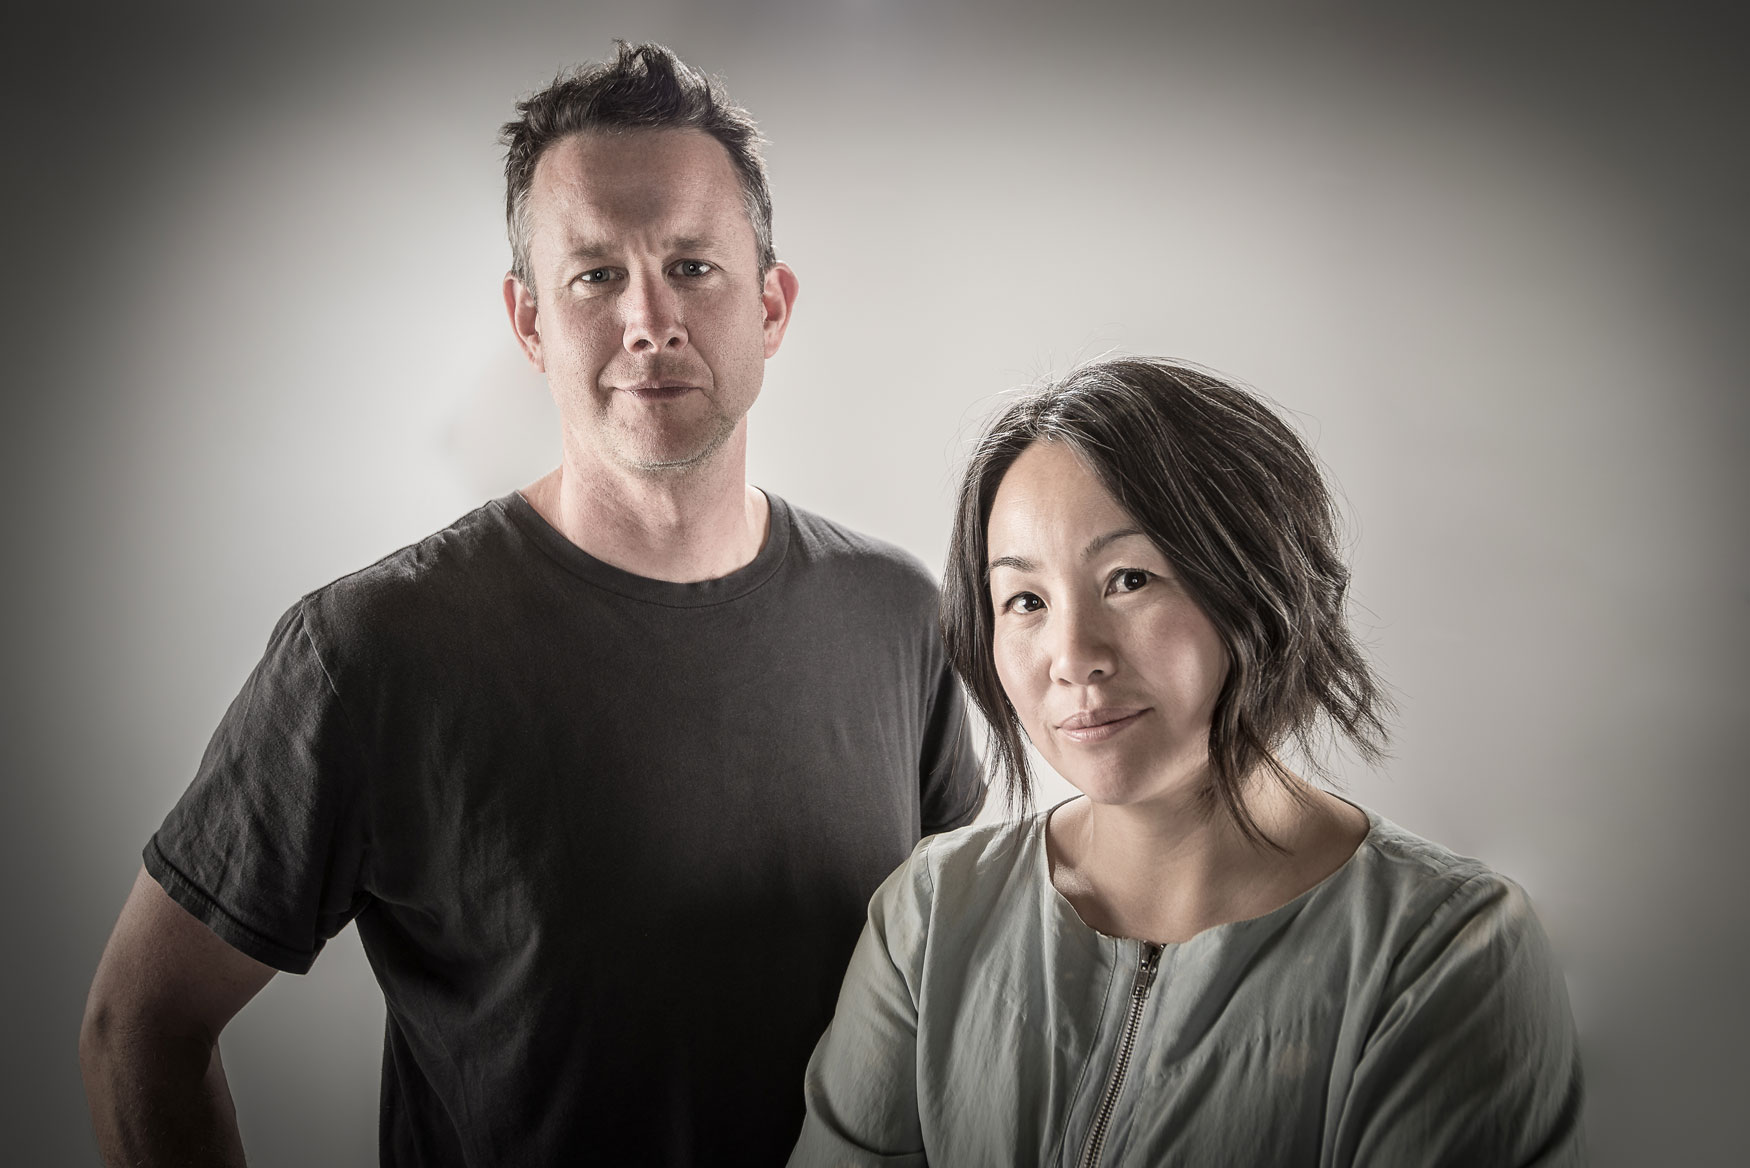 Directors Maiko Yamamoto And James Long Win 2019 Siminovitch Prize In Theatre